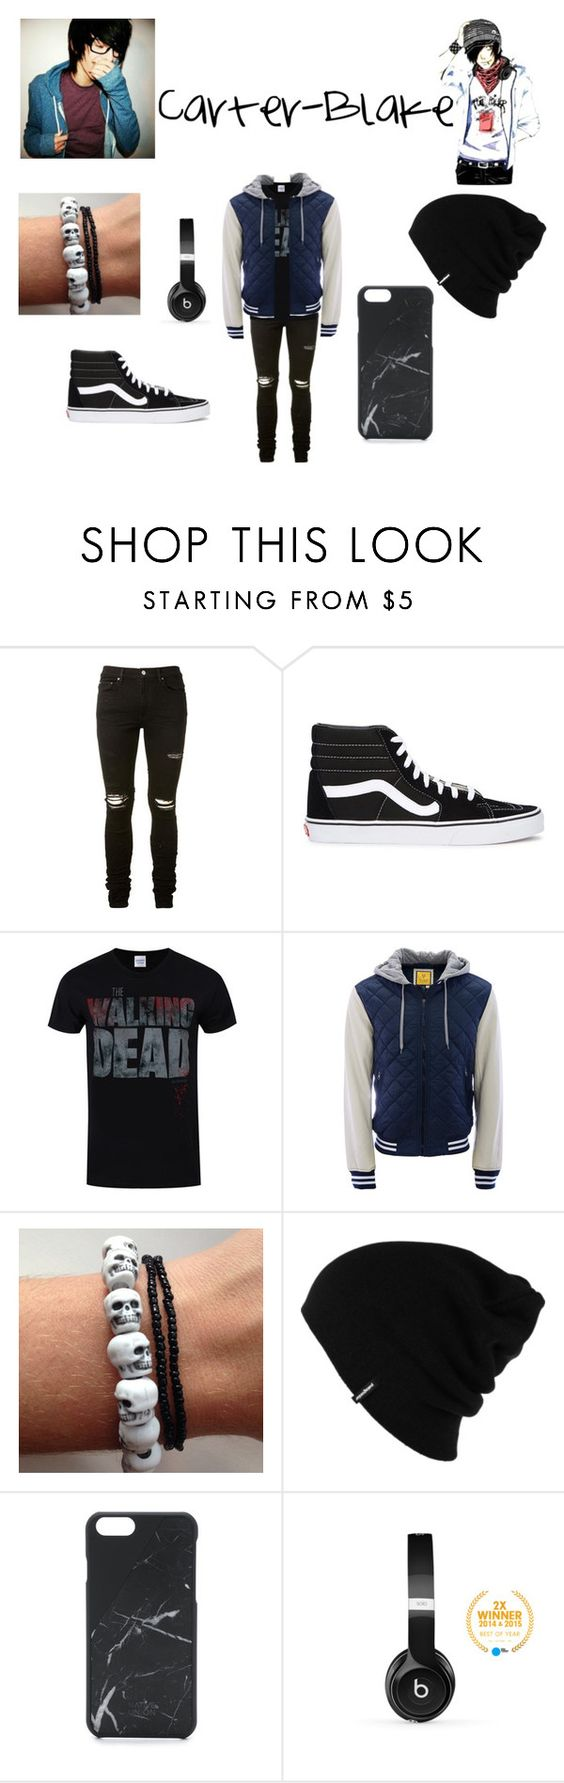 """""""Carter-Blake"""" by kya-mya ❤ liked on Polyvore featuring AMIRI, Vans, Aéropostale, Patagonia, Native Union, Beats by Dr. Dre, men's fashion and menswear"""